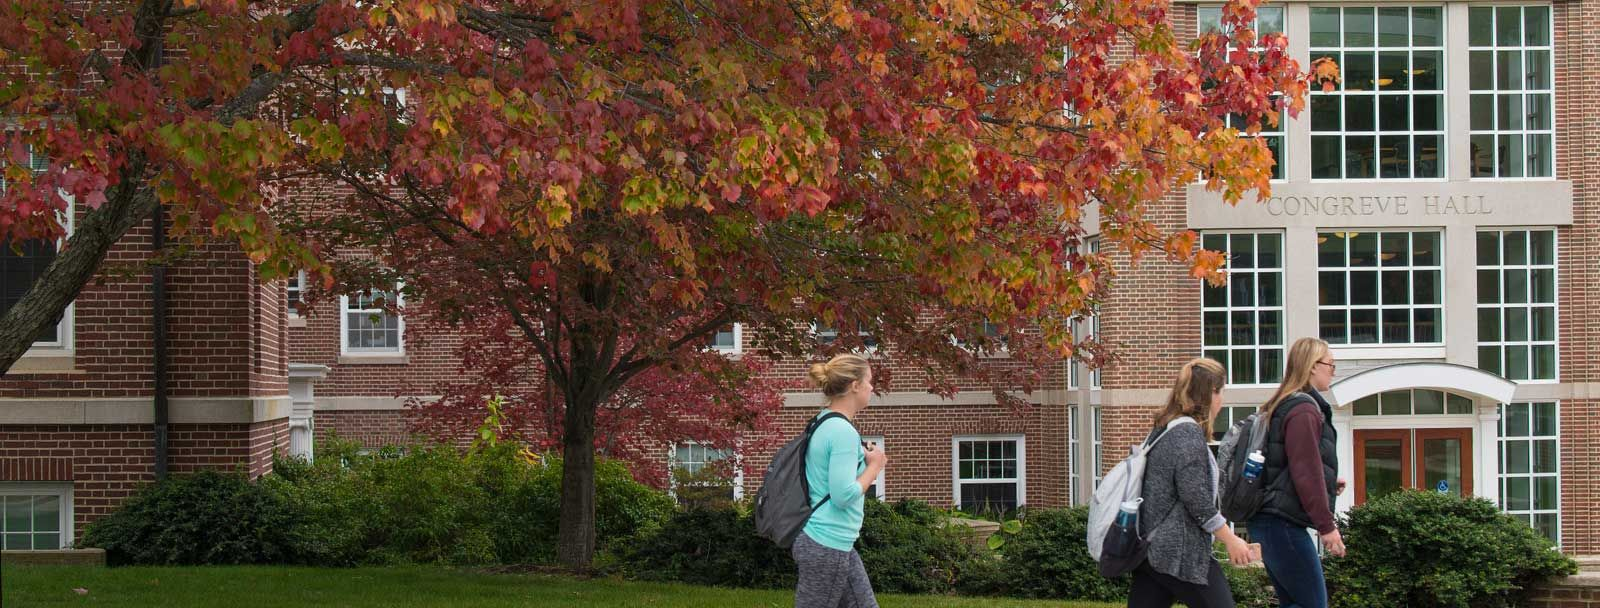 A colorful tree in front of Congreve Hall at UNH